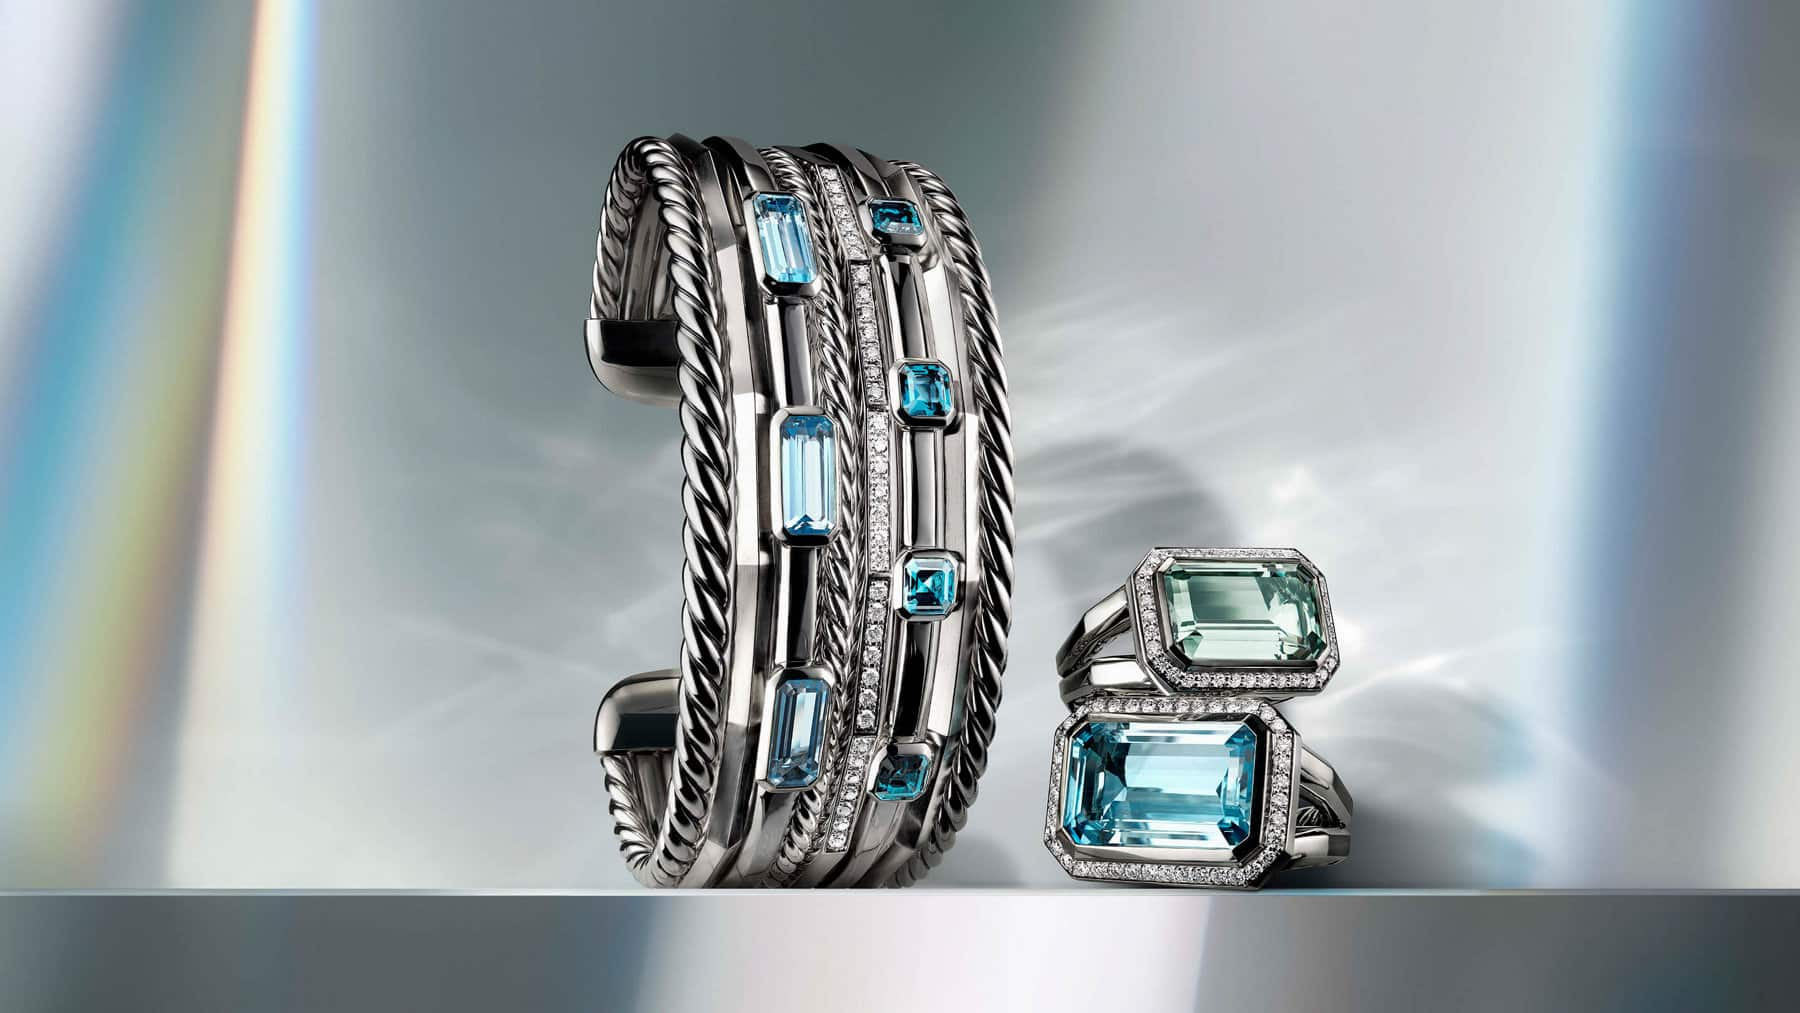 A color photo shows a David Yurman multi-row Stax cuff standing on its side next to a stack of two Novella rings.  The jewelry is crafted from sterling silver with emerald-cut blue topaz and prasiolite gemstones and pavé diamond accents. In the background are reflections of rainbow-hued light.